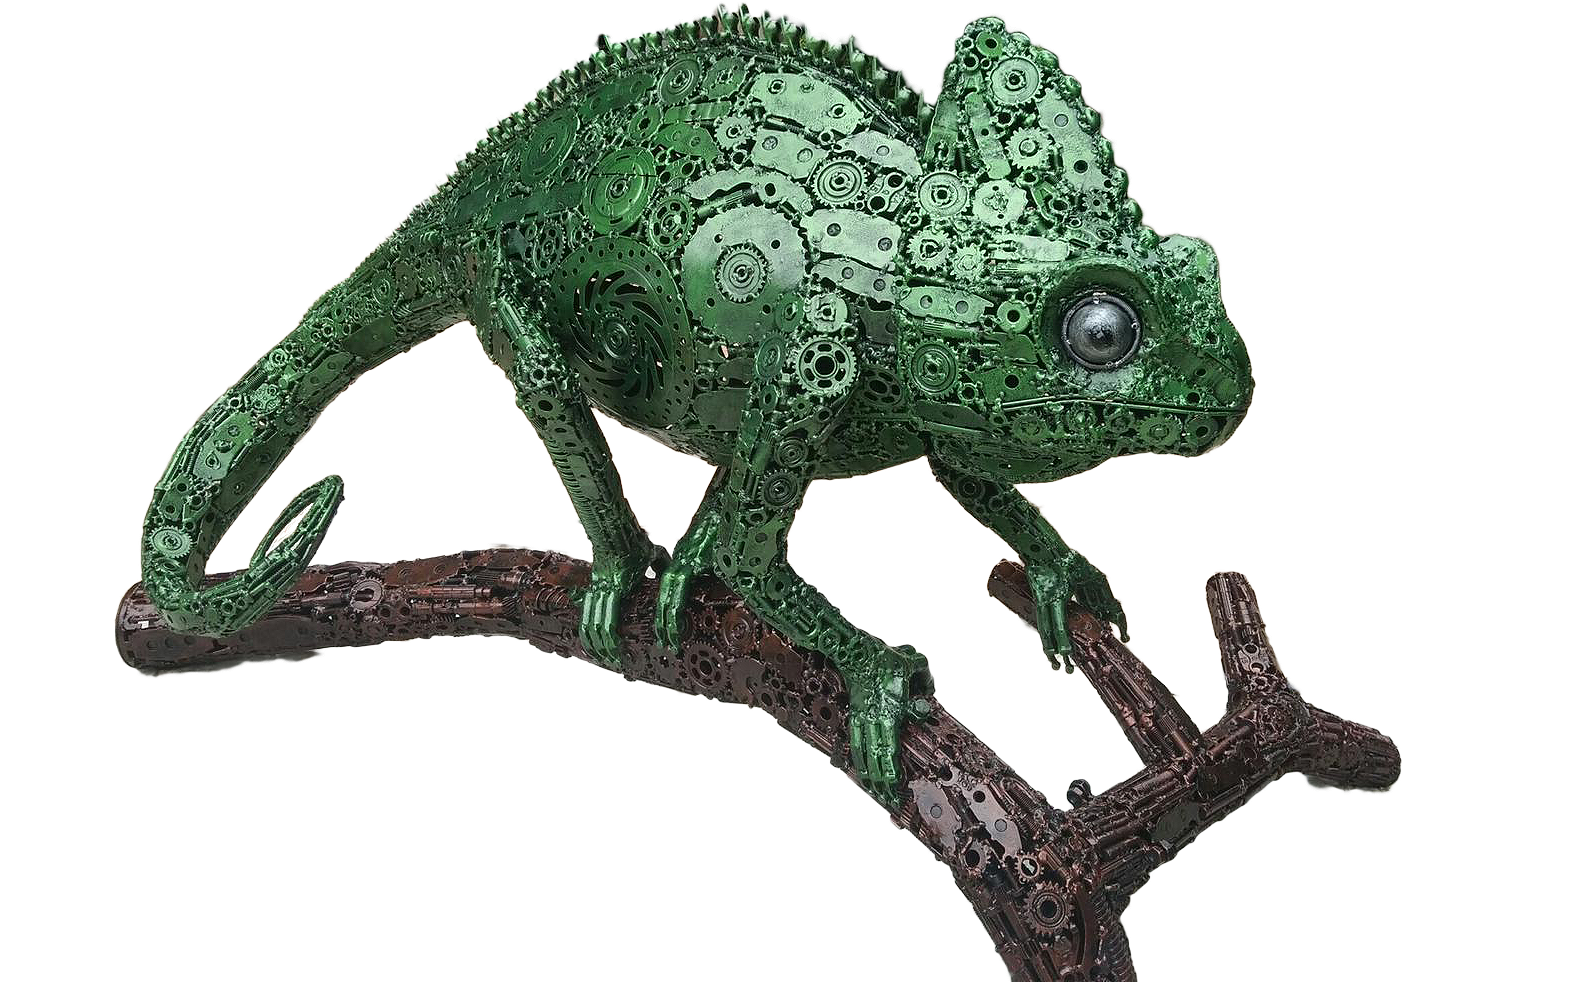 Amating Metal Art Gallery - Chameleon